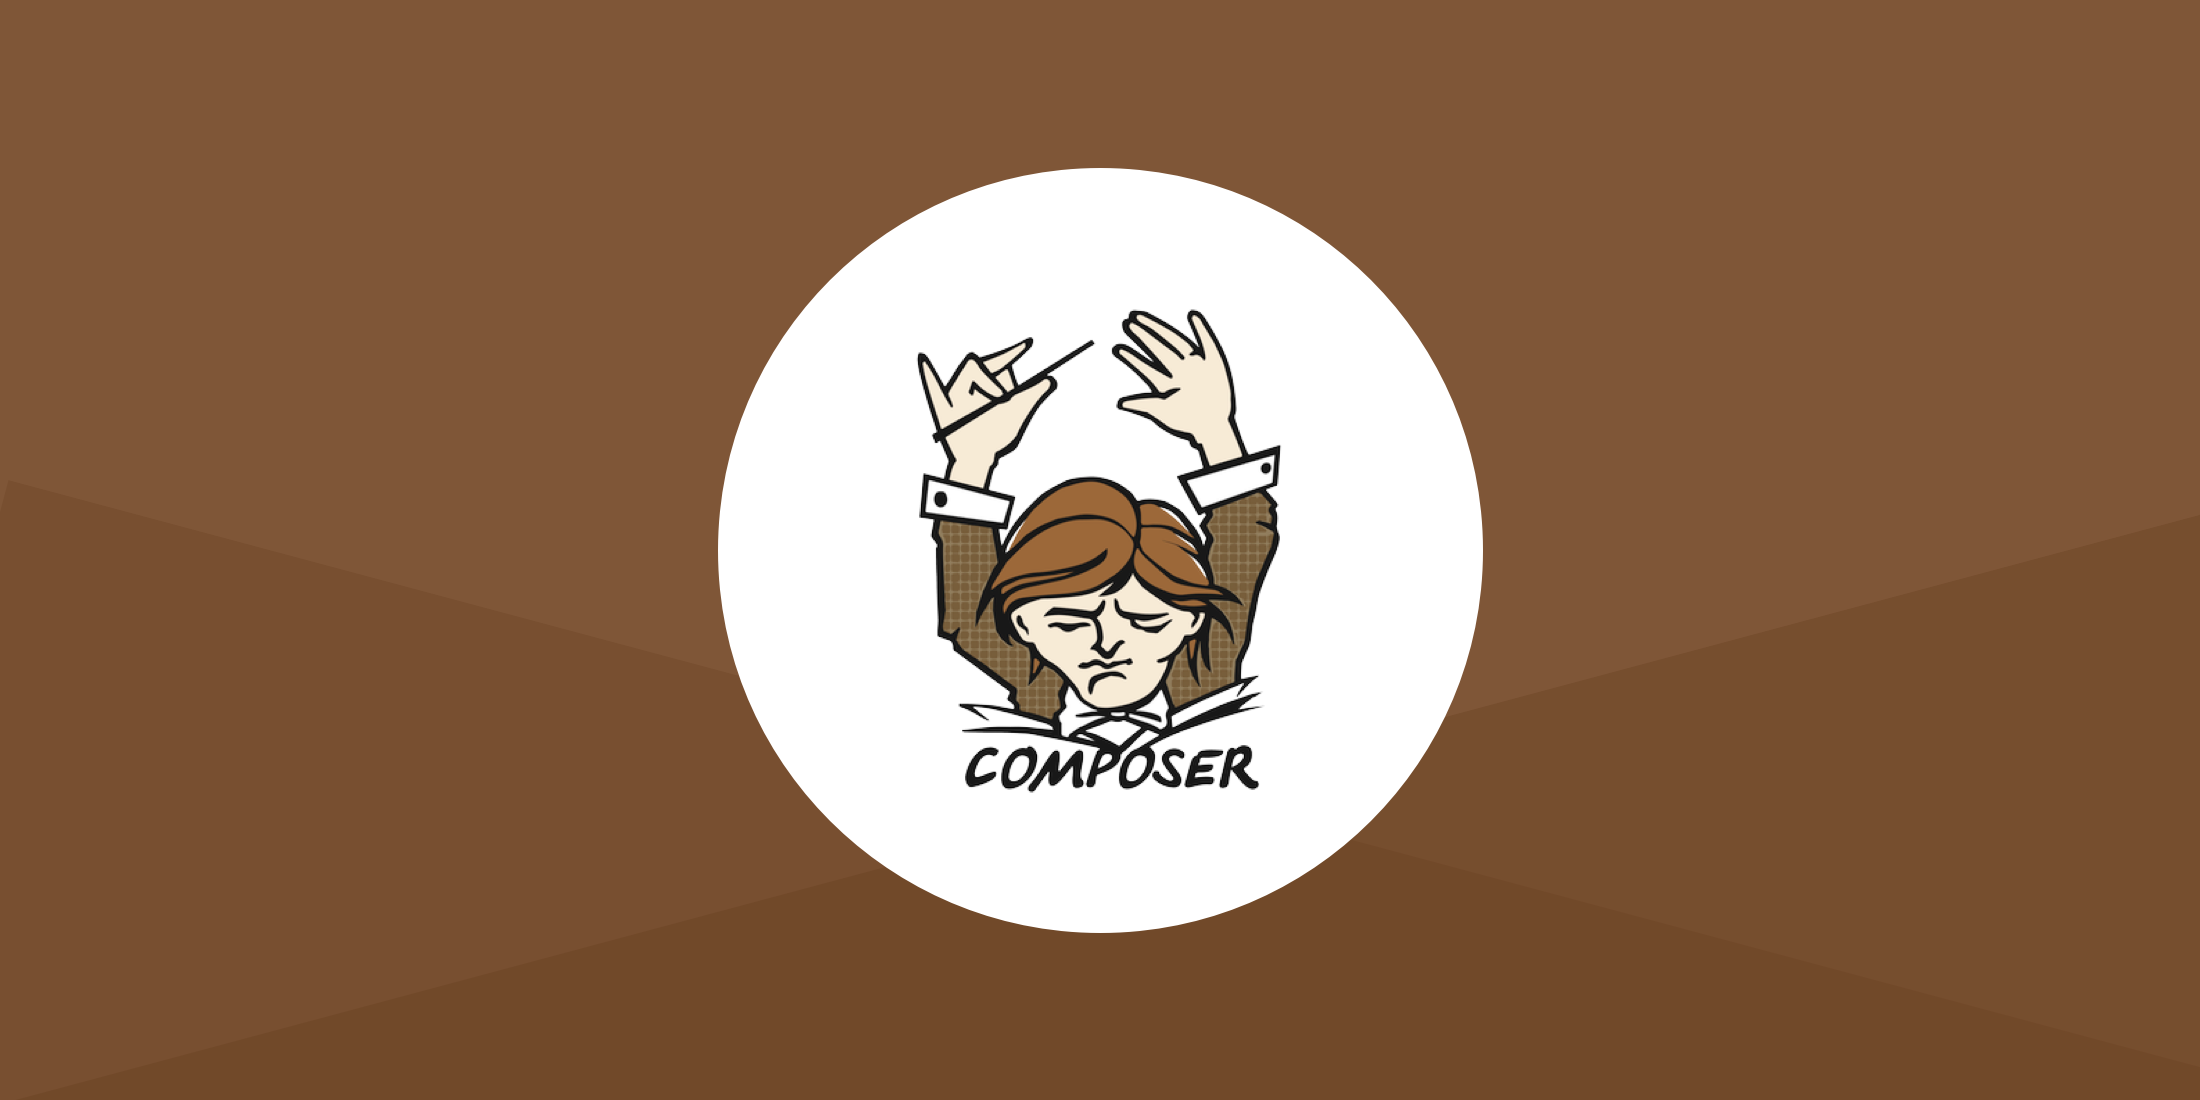 composer-php-unbranded.png